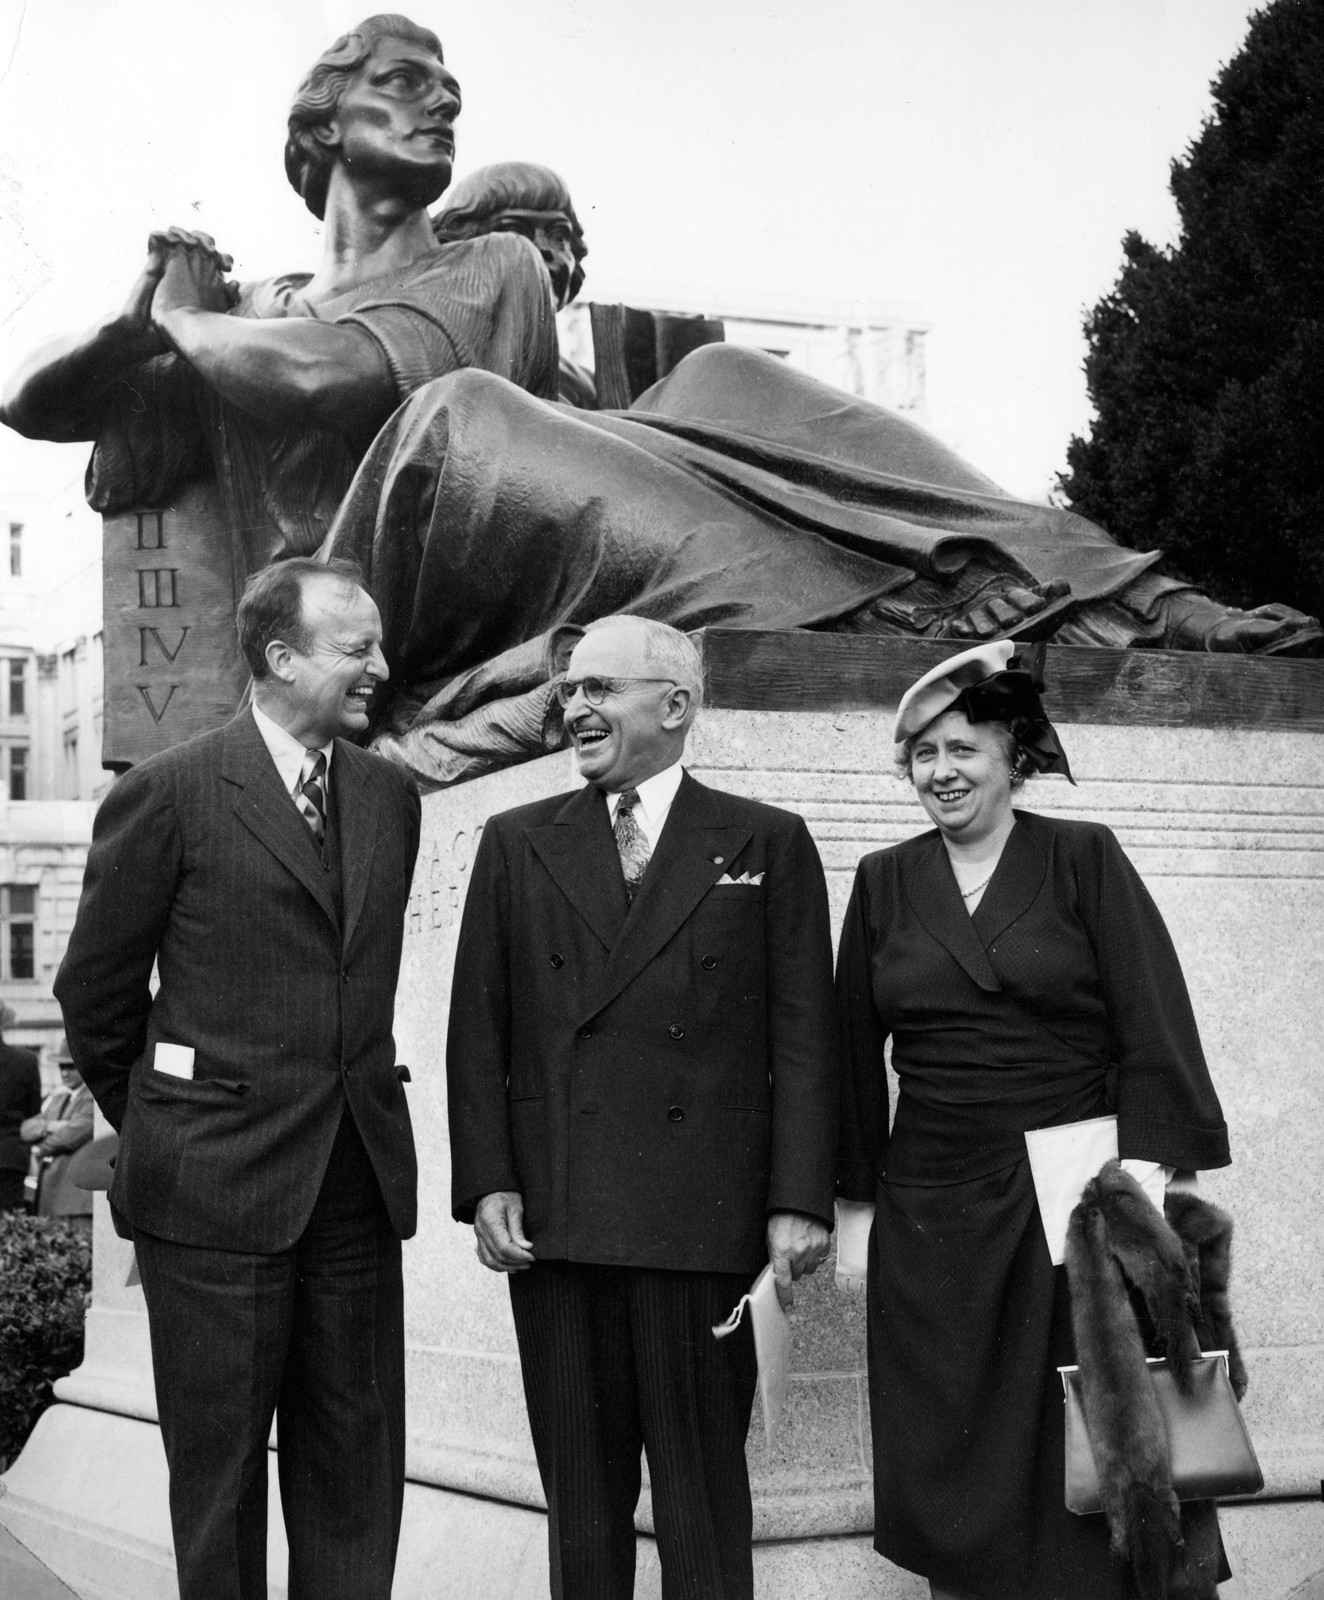 Photograph of Archibald Roosevelt, President Harry S. Truman and Bess Wallace Truman Before the Straus Memorial